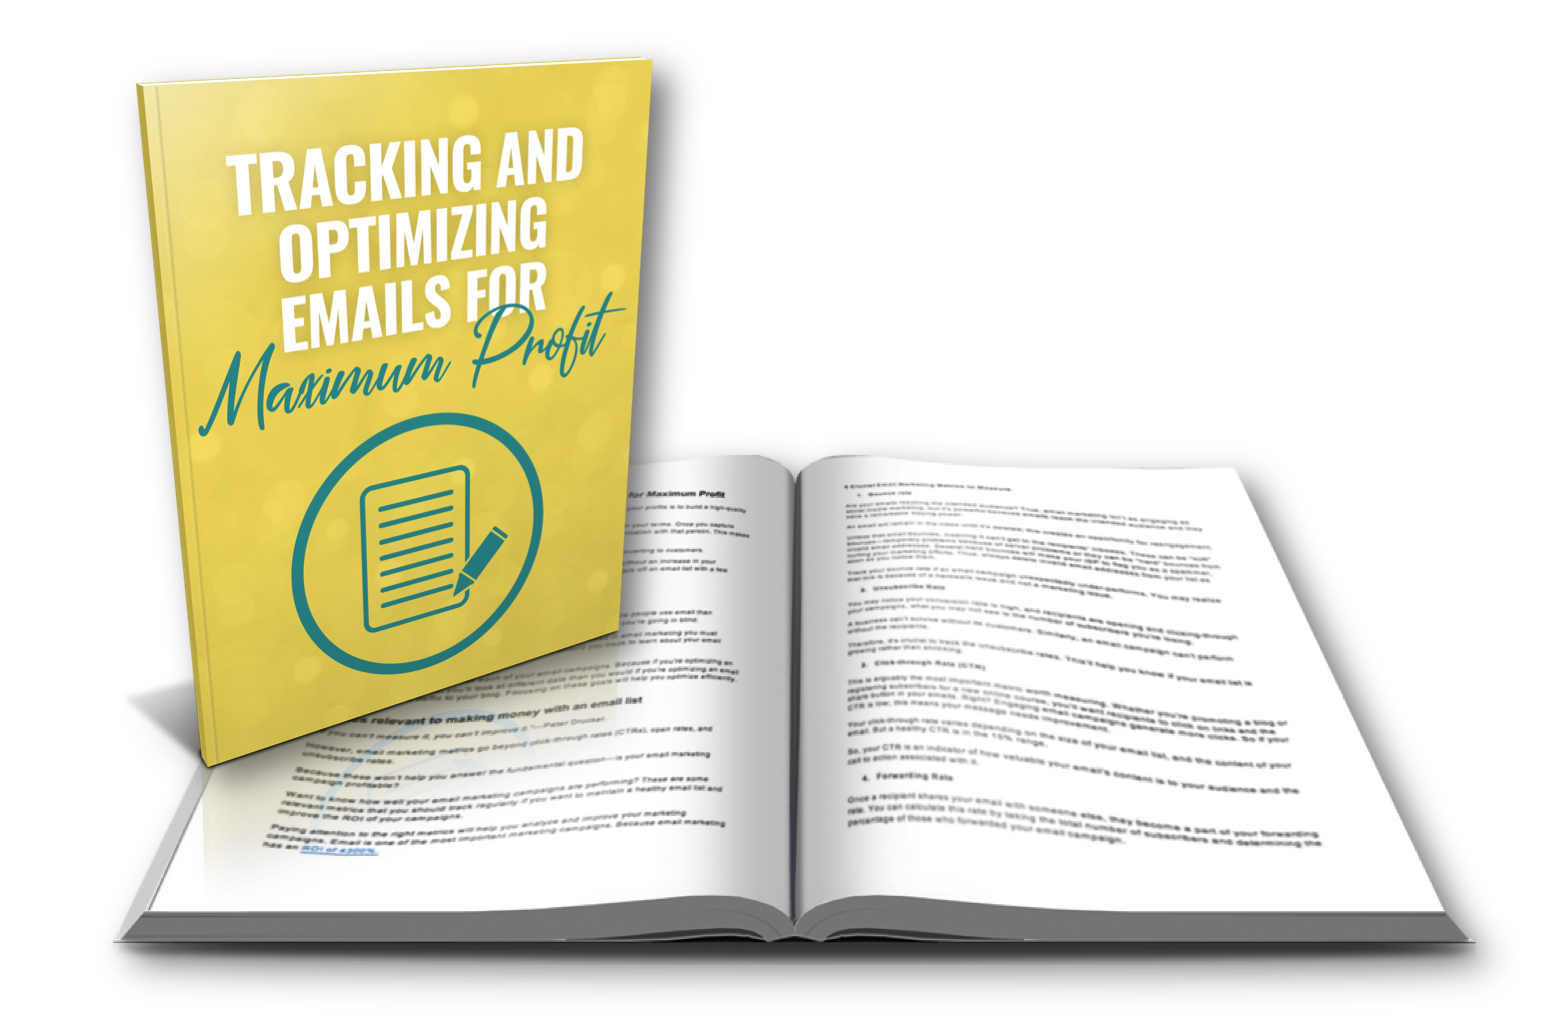 Tracking and Optimizing Emails for Maximum Profit